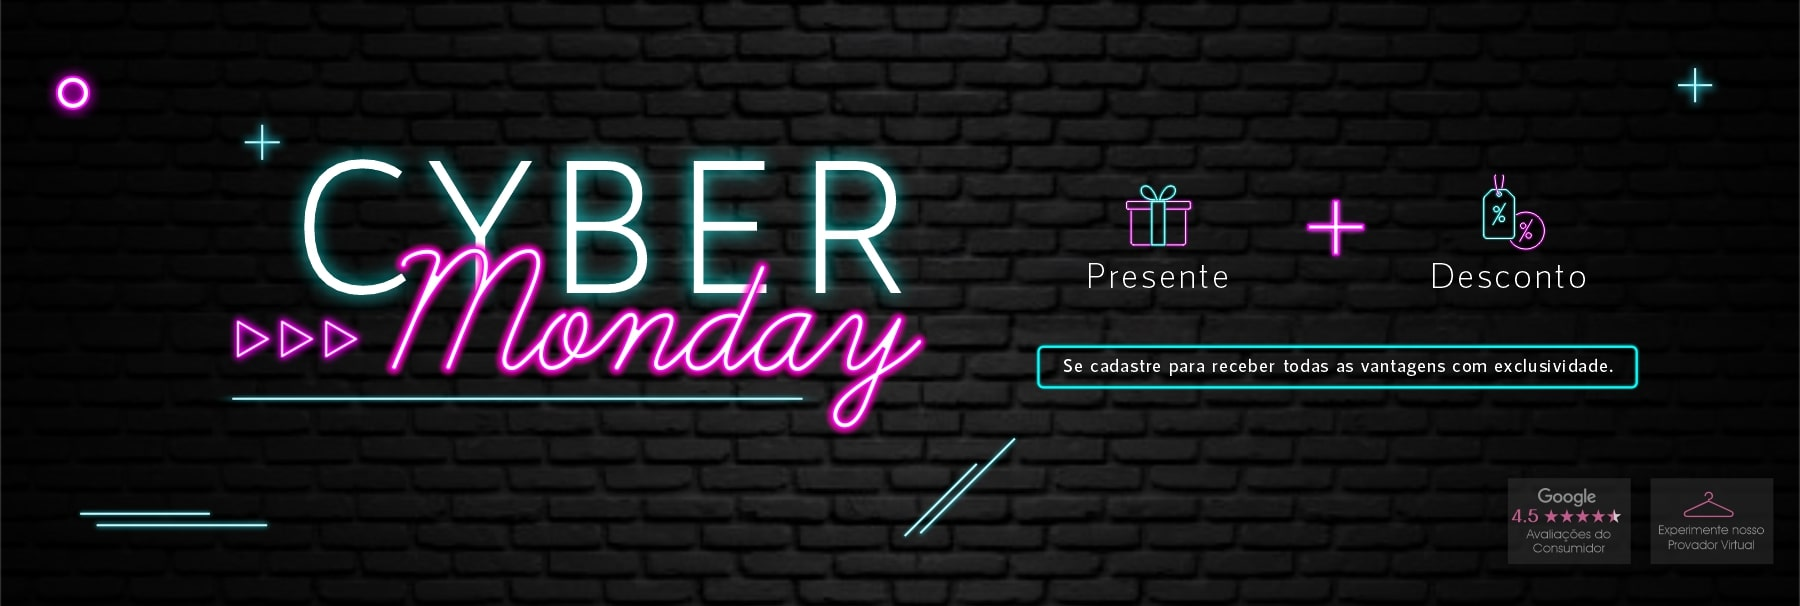 Banner Cyber Monday